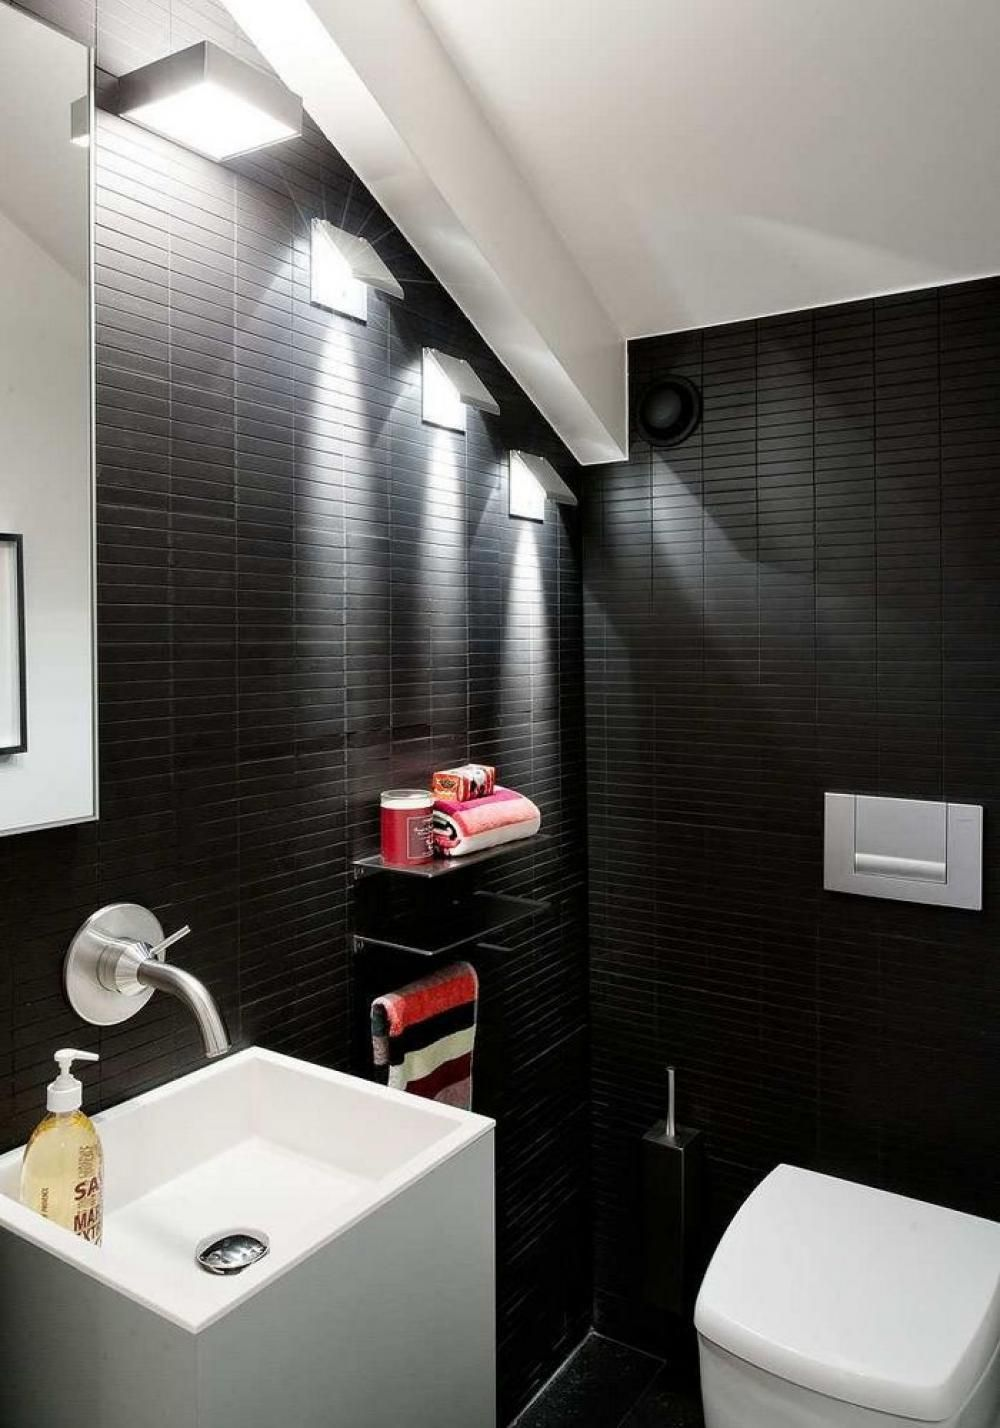 Dramatic bathroom wall lighting design with black color for Bathroom lighting design tips